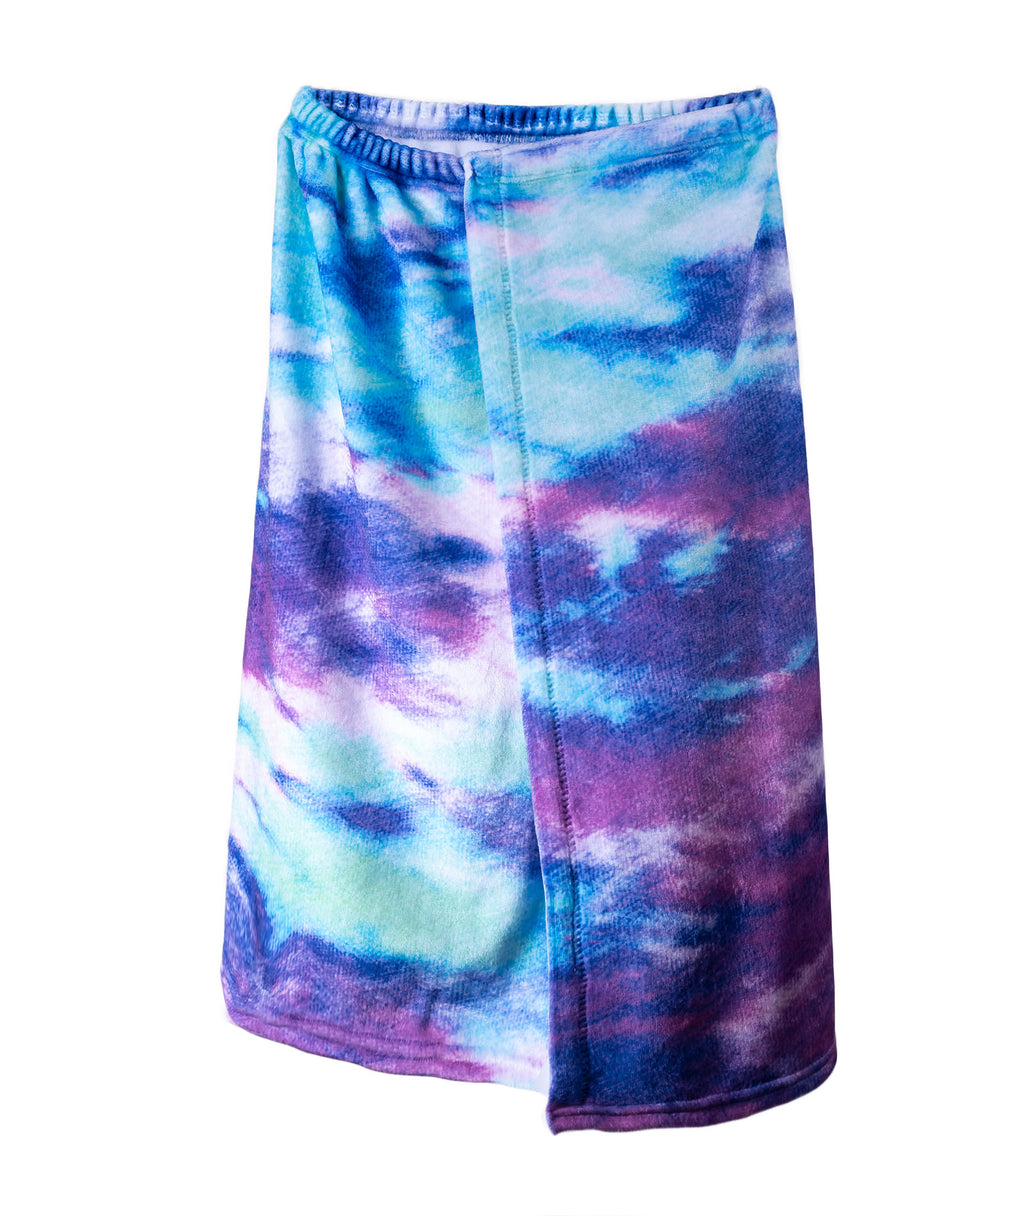 Penelope Wildberry Bleach Tie-Dye Spa Wrap